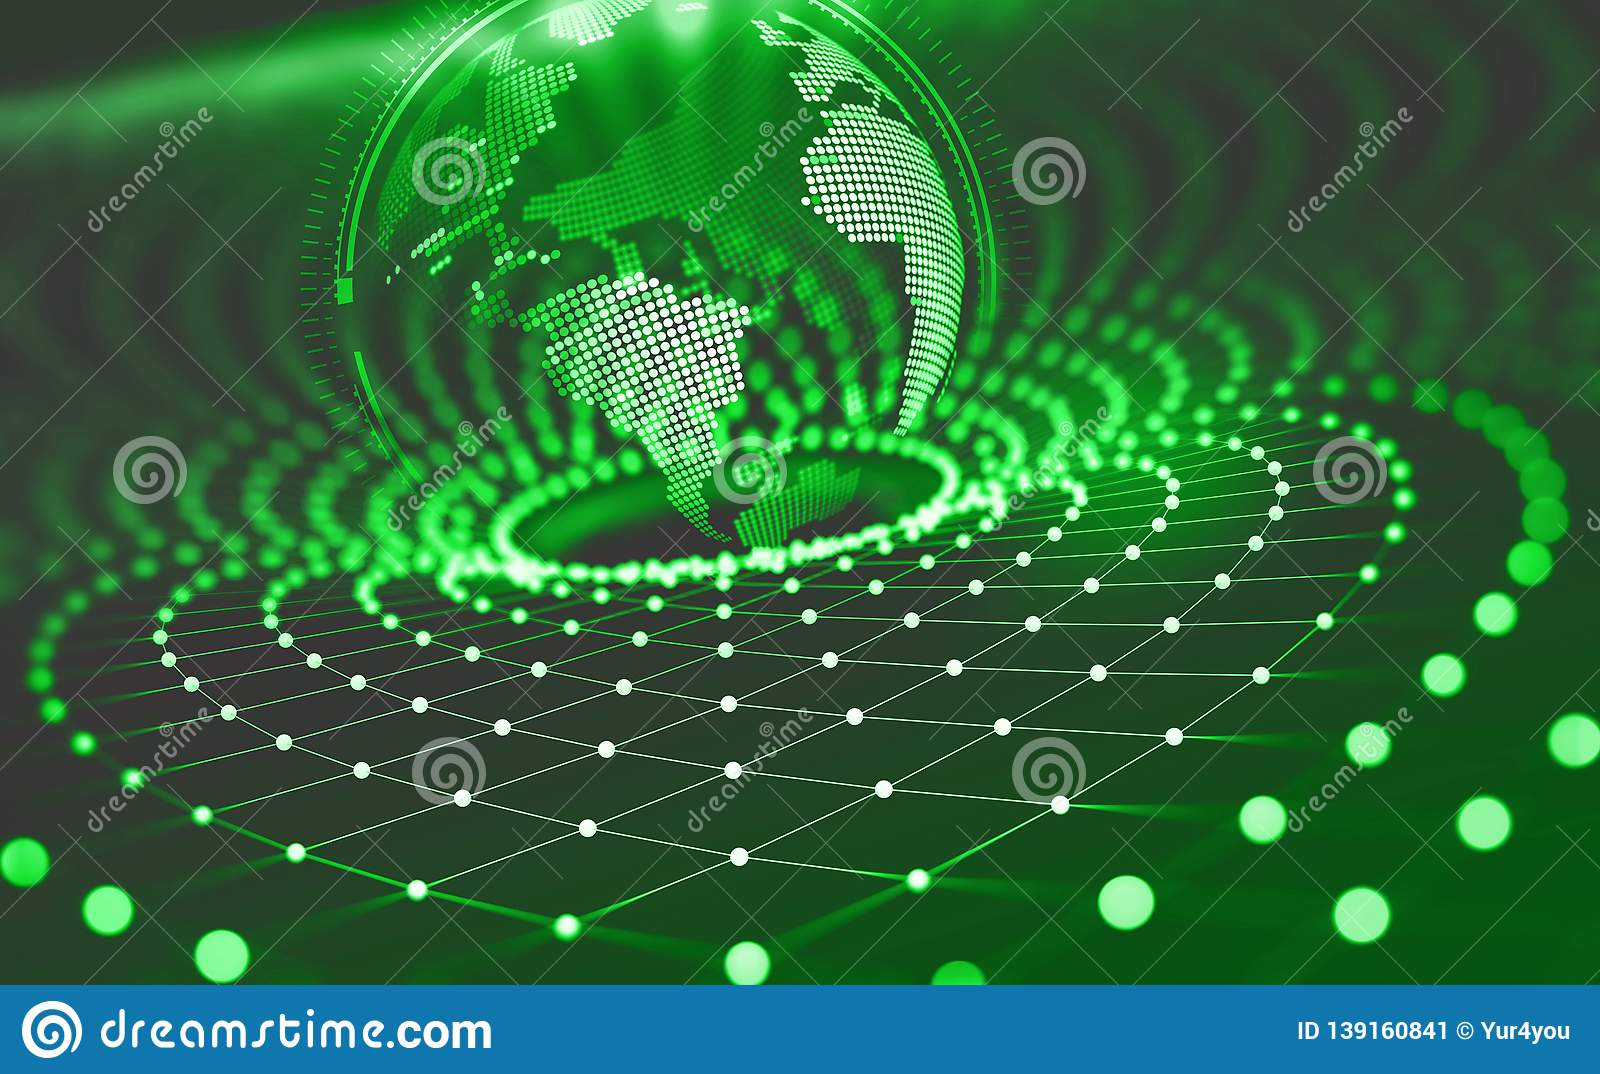 Planet Earth in the era of digital technology. Global communication networks of future. Data storage system